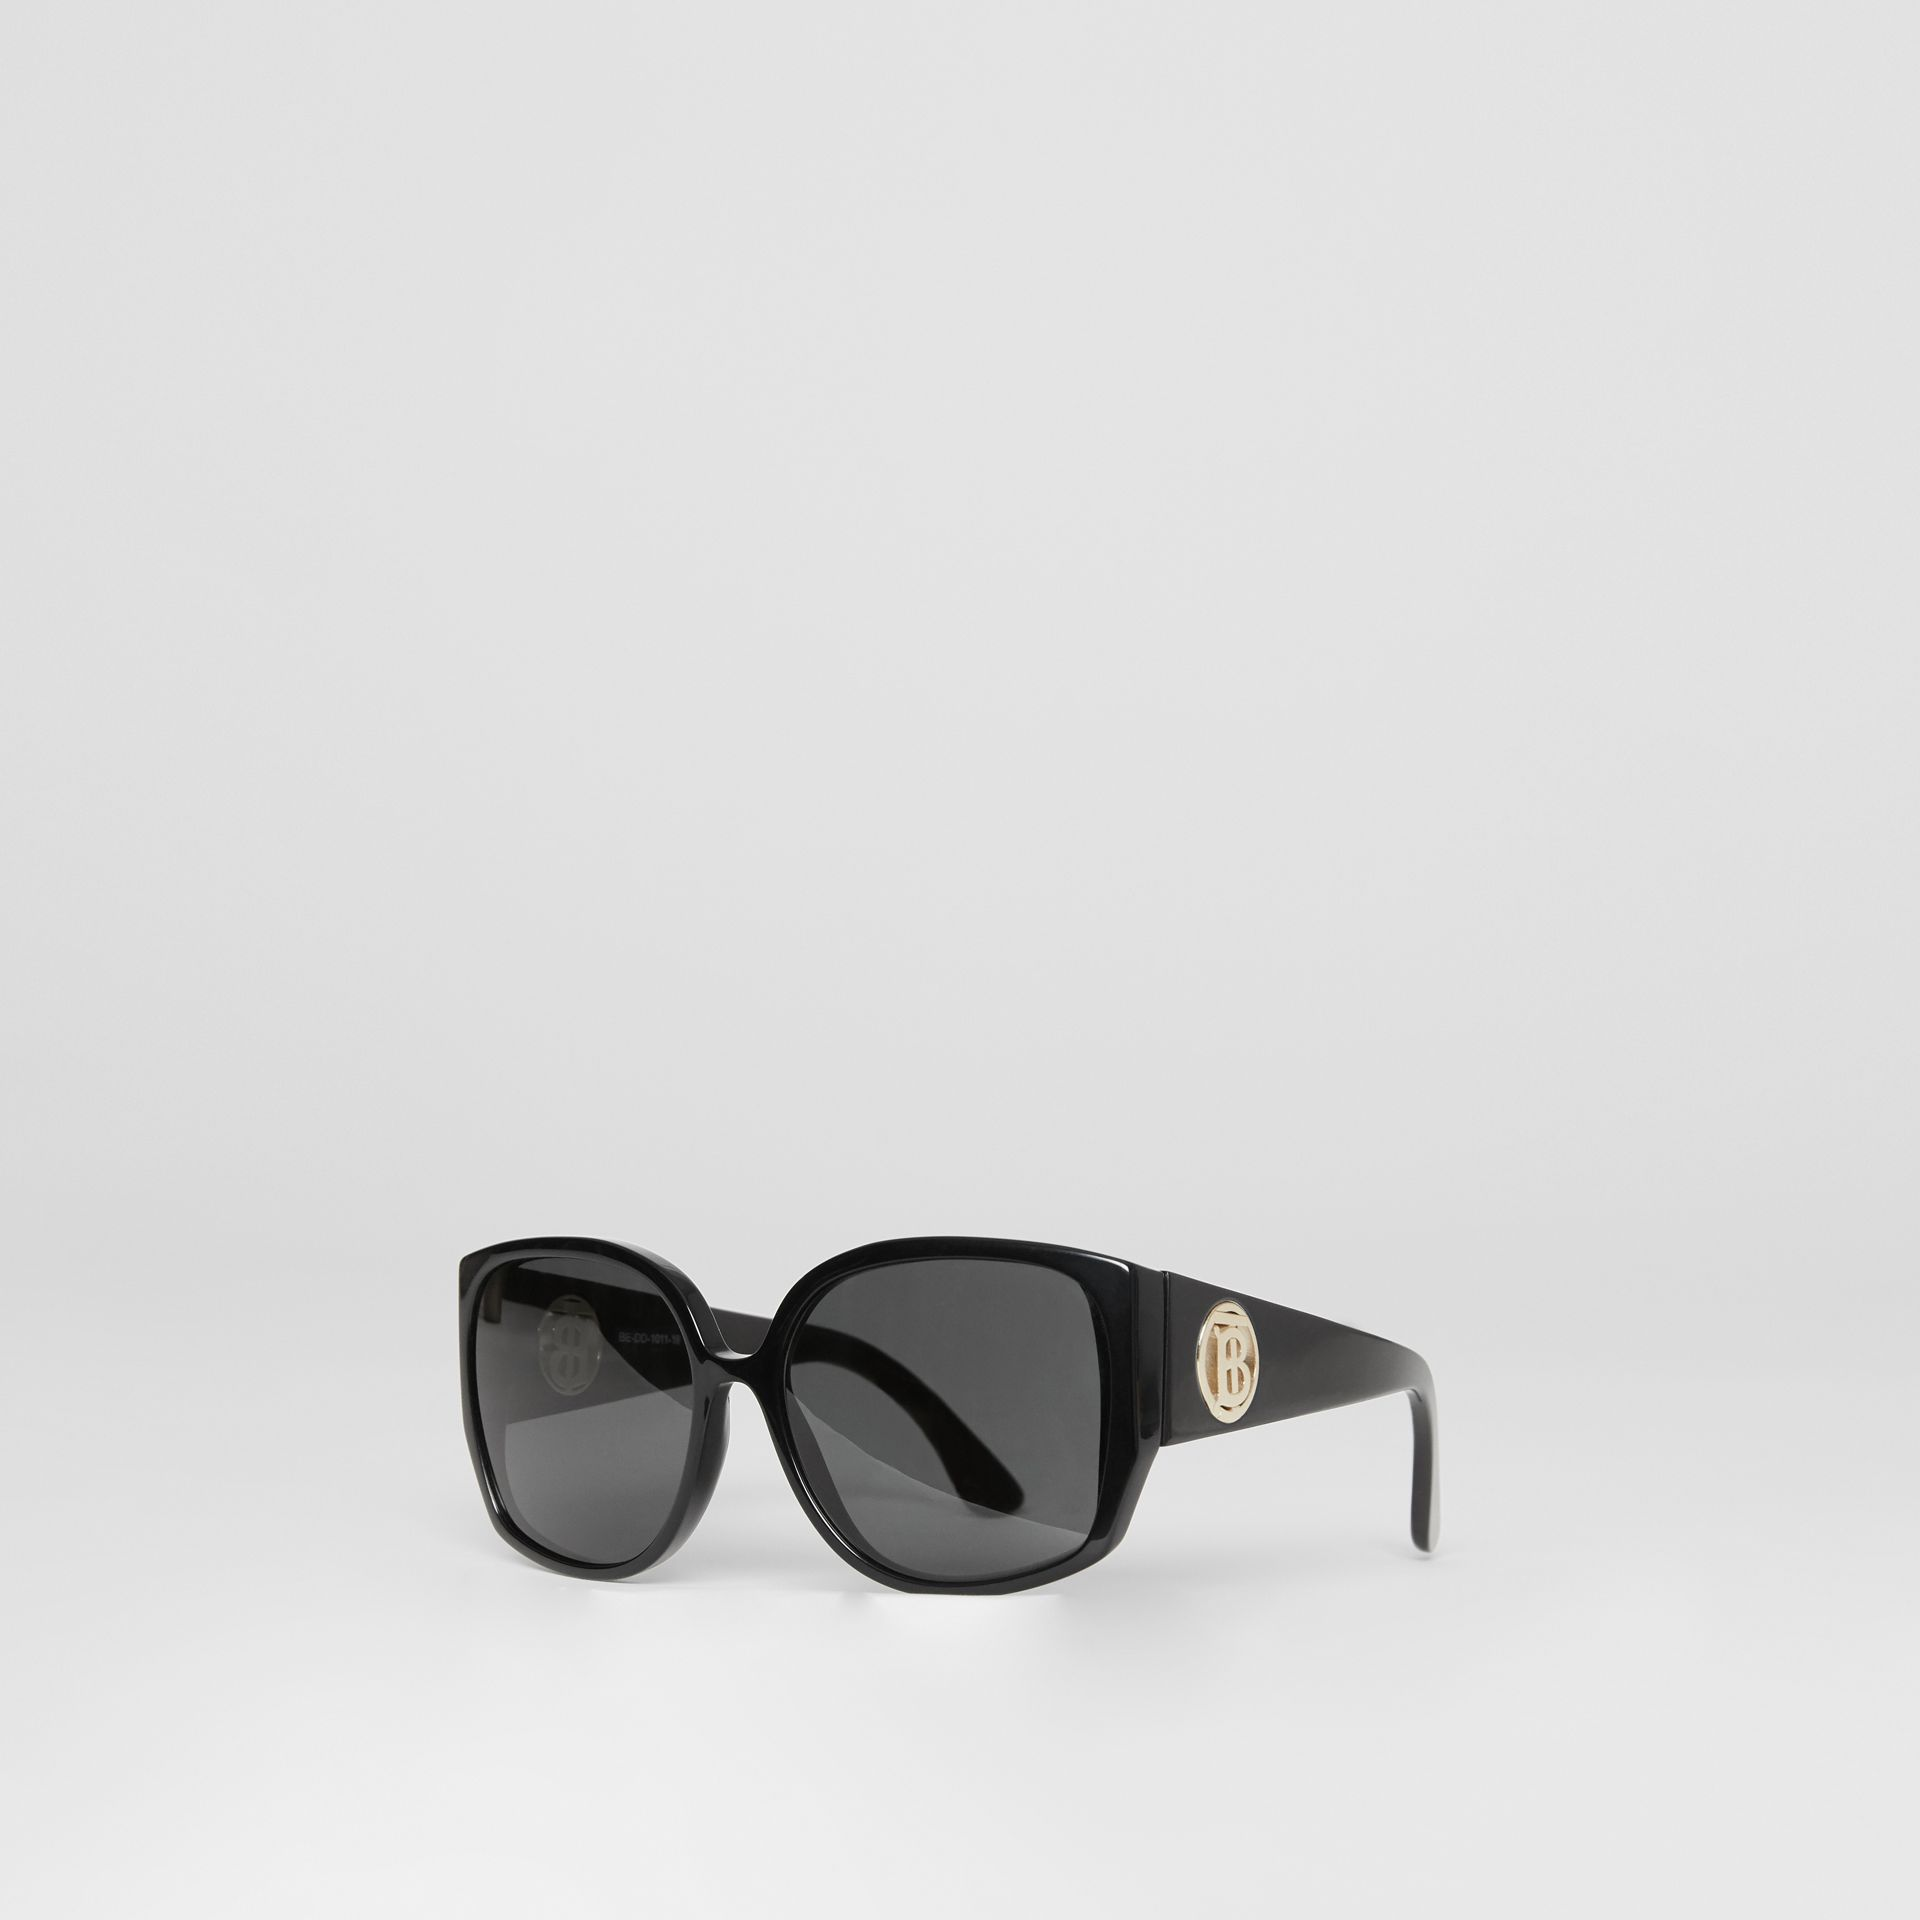 Oversized Butterfly Frame Sunglasses in Black - Women | Burberry United States - gallery image 5